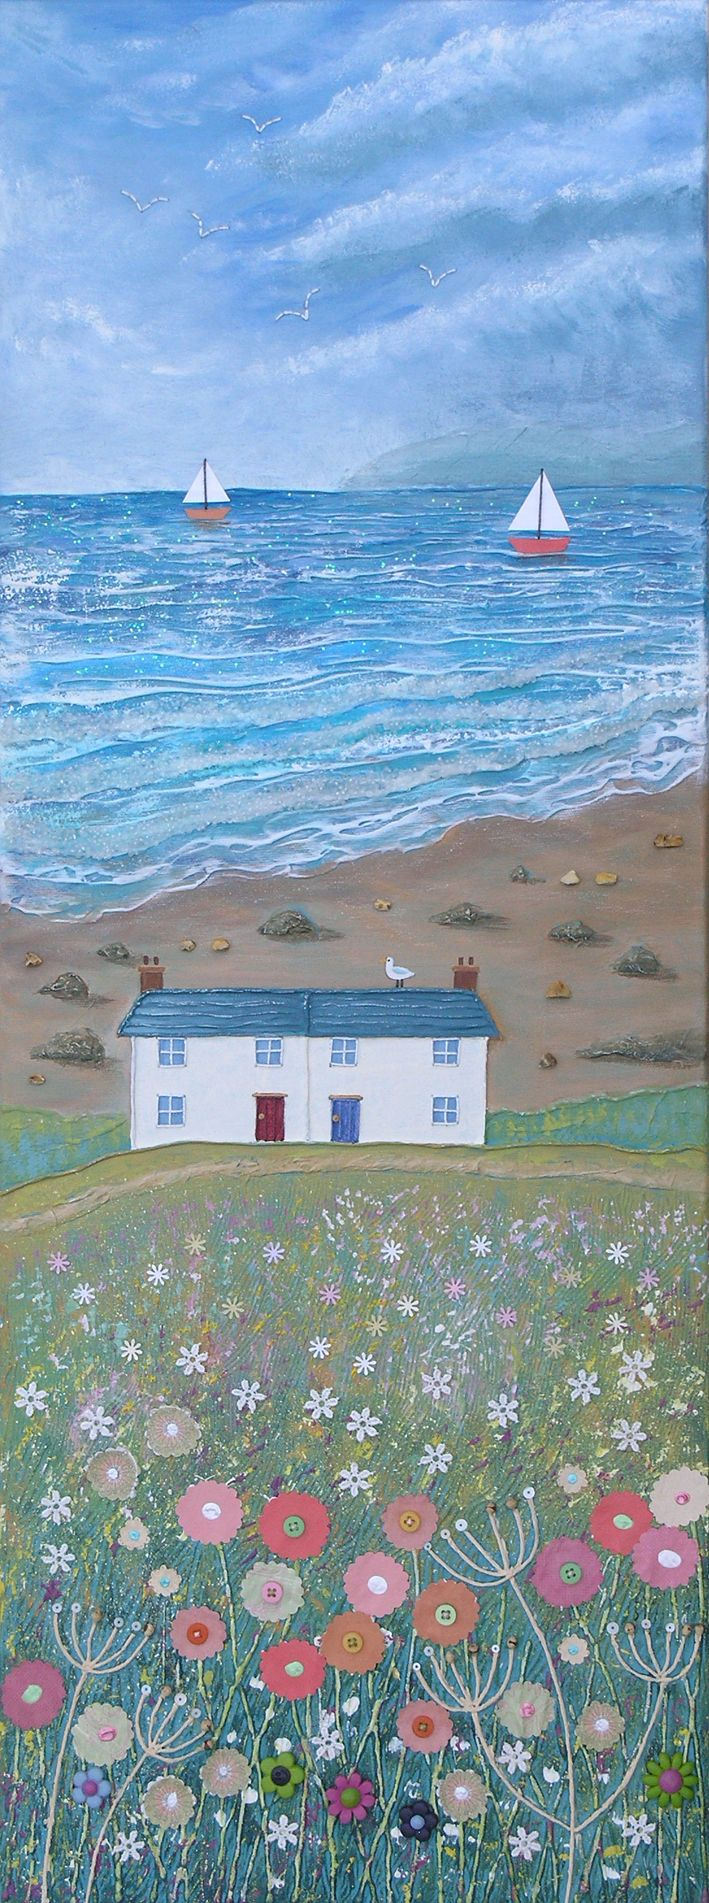 'You should see the wonderful views from my house', she said. Painted by Jo Grundy.